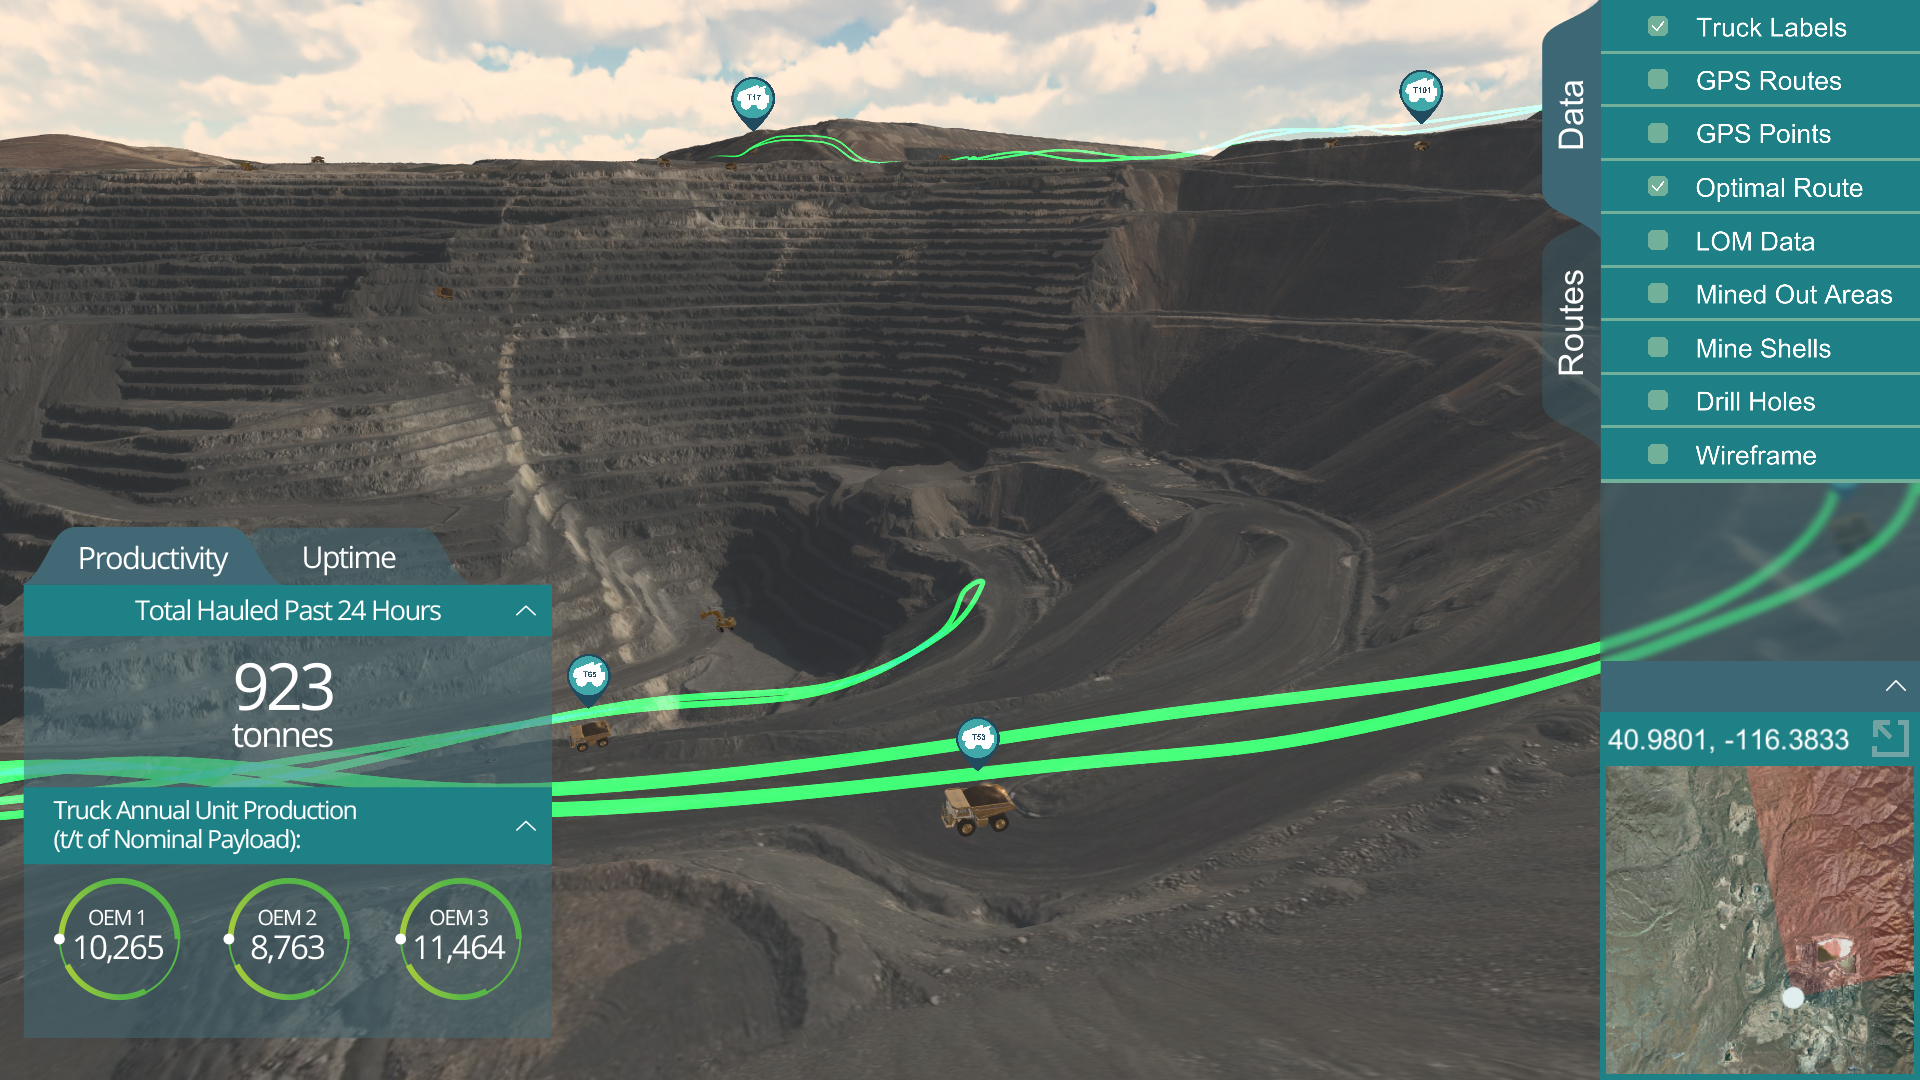 LlamaZOO Mine Site Digital Twin